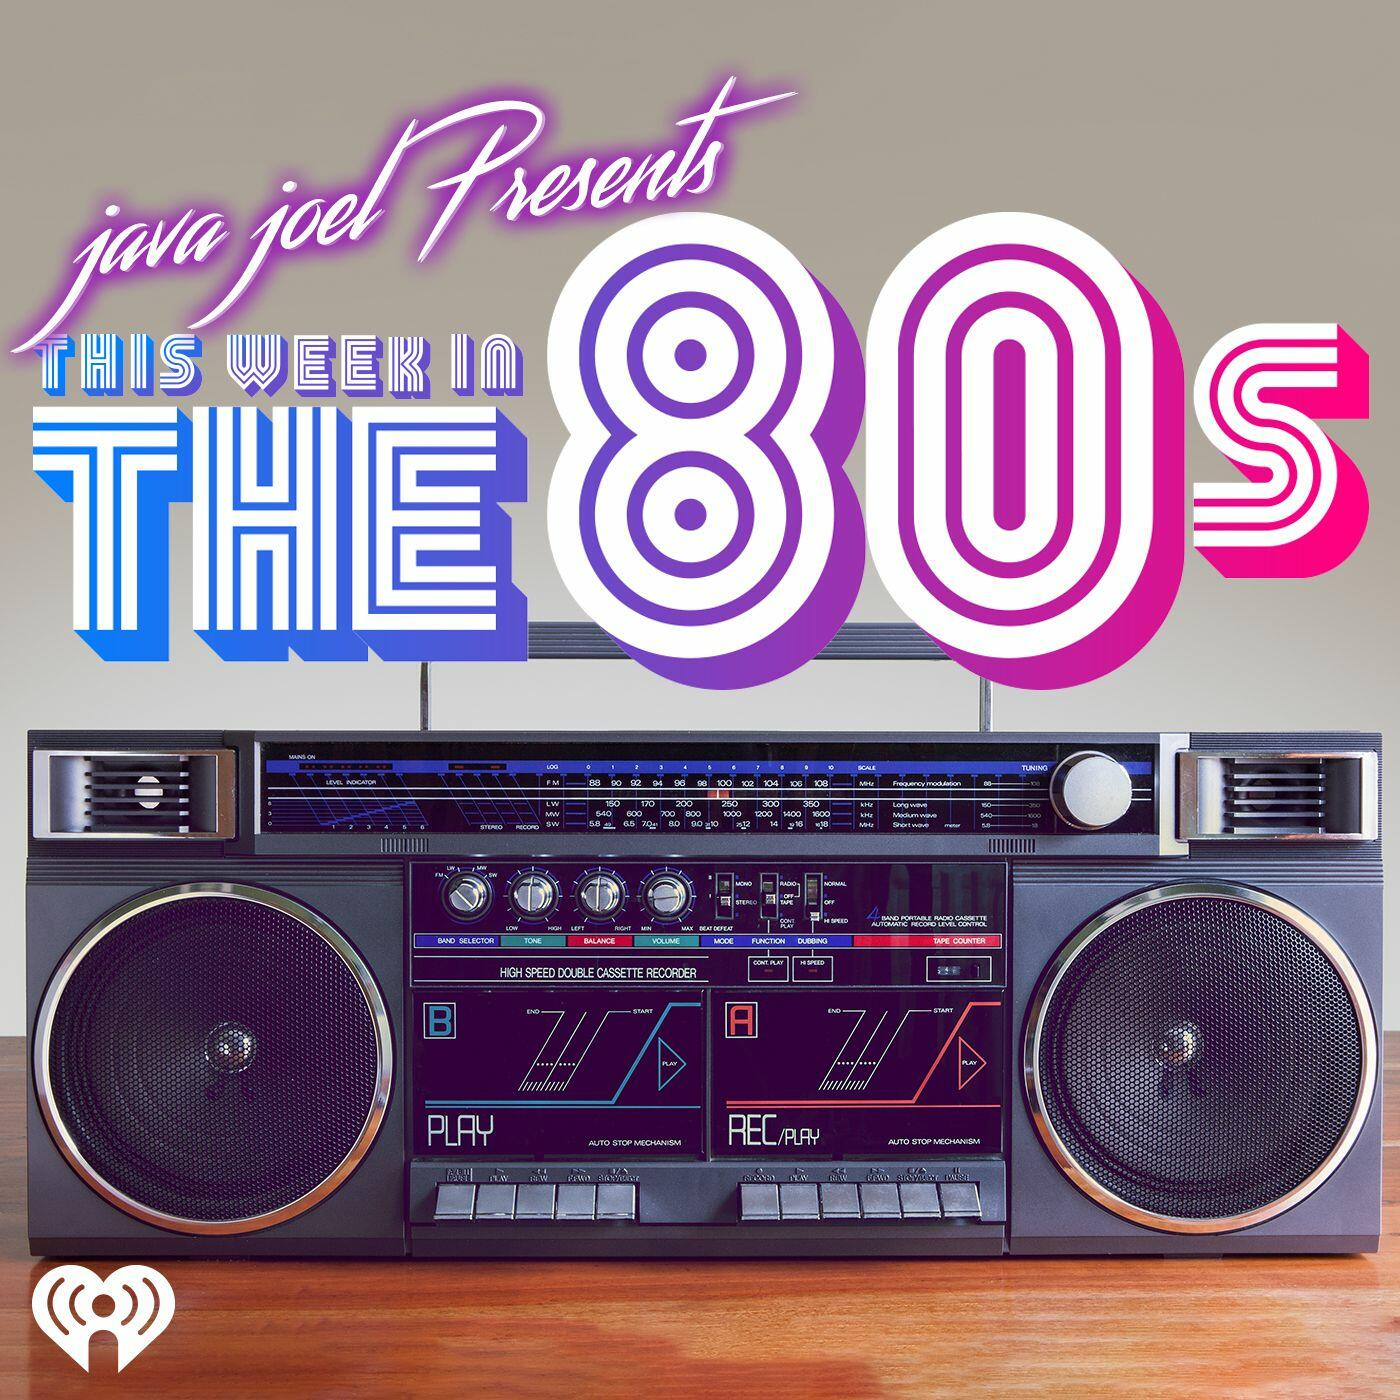 This Week In The 80s